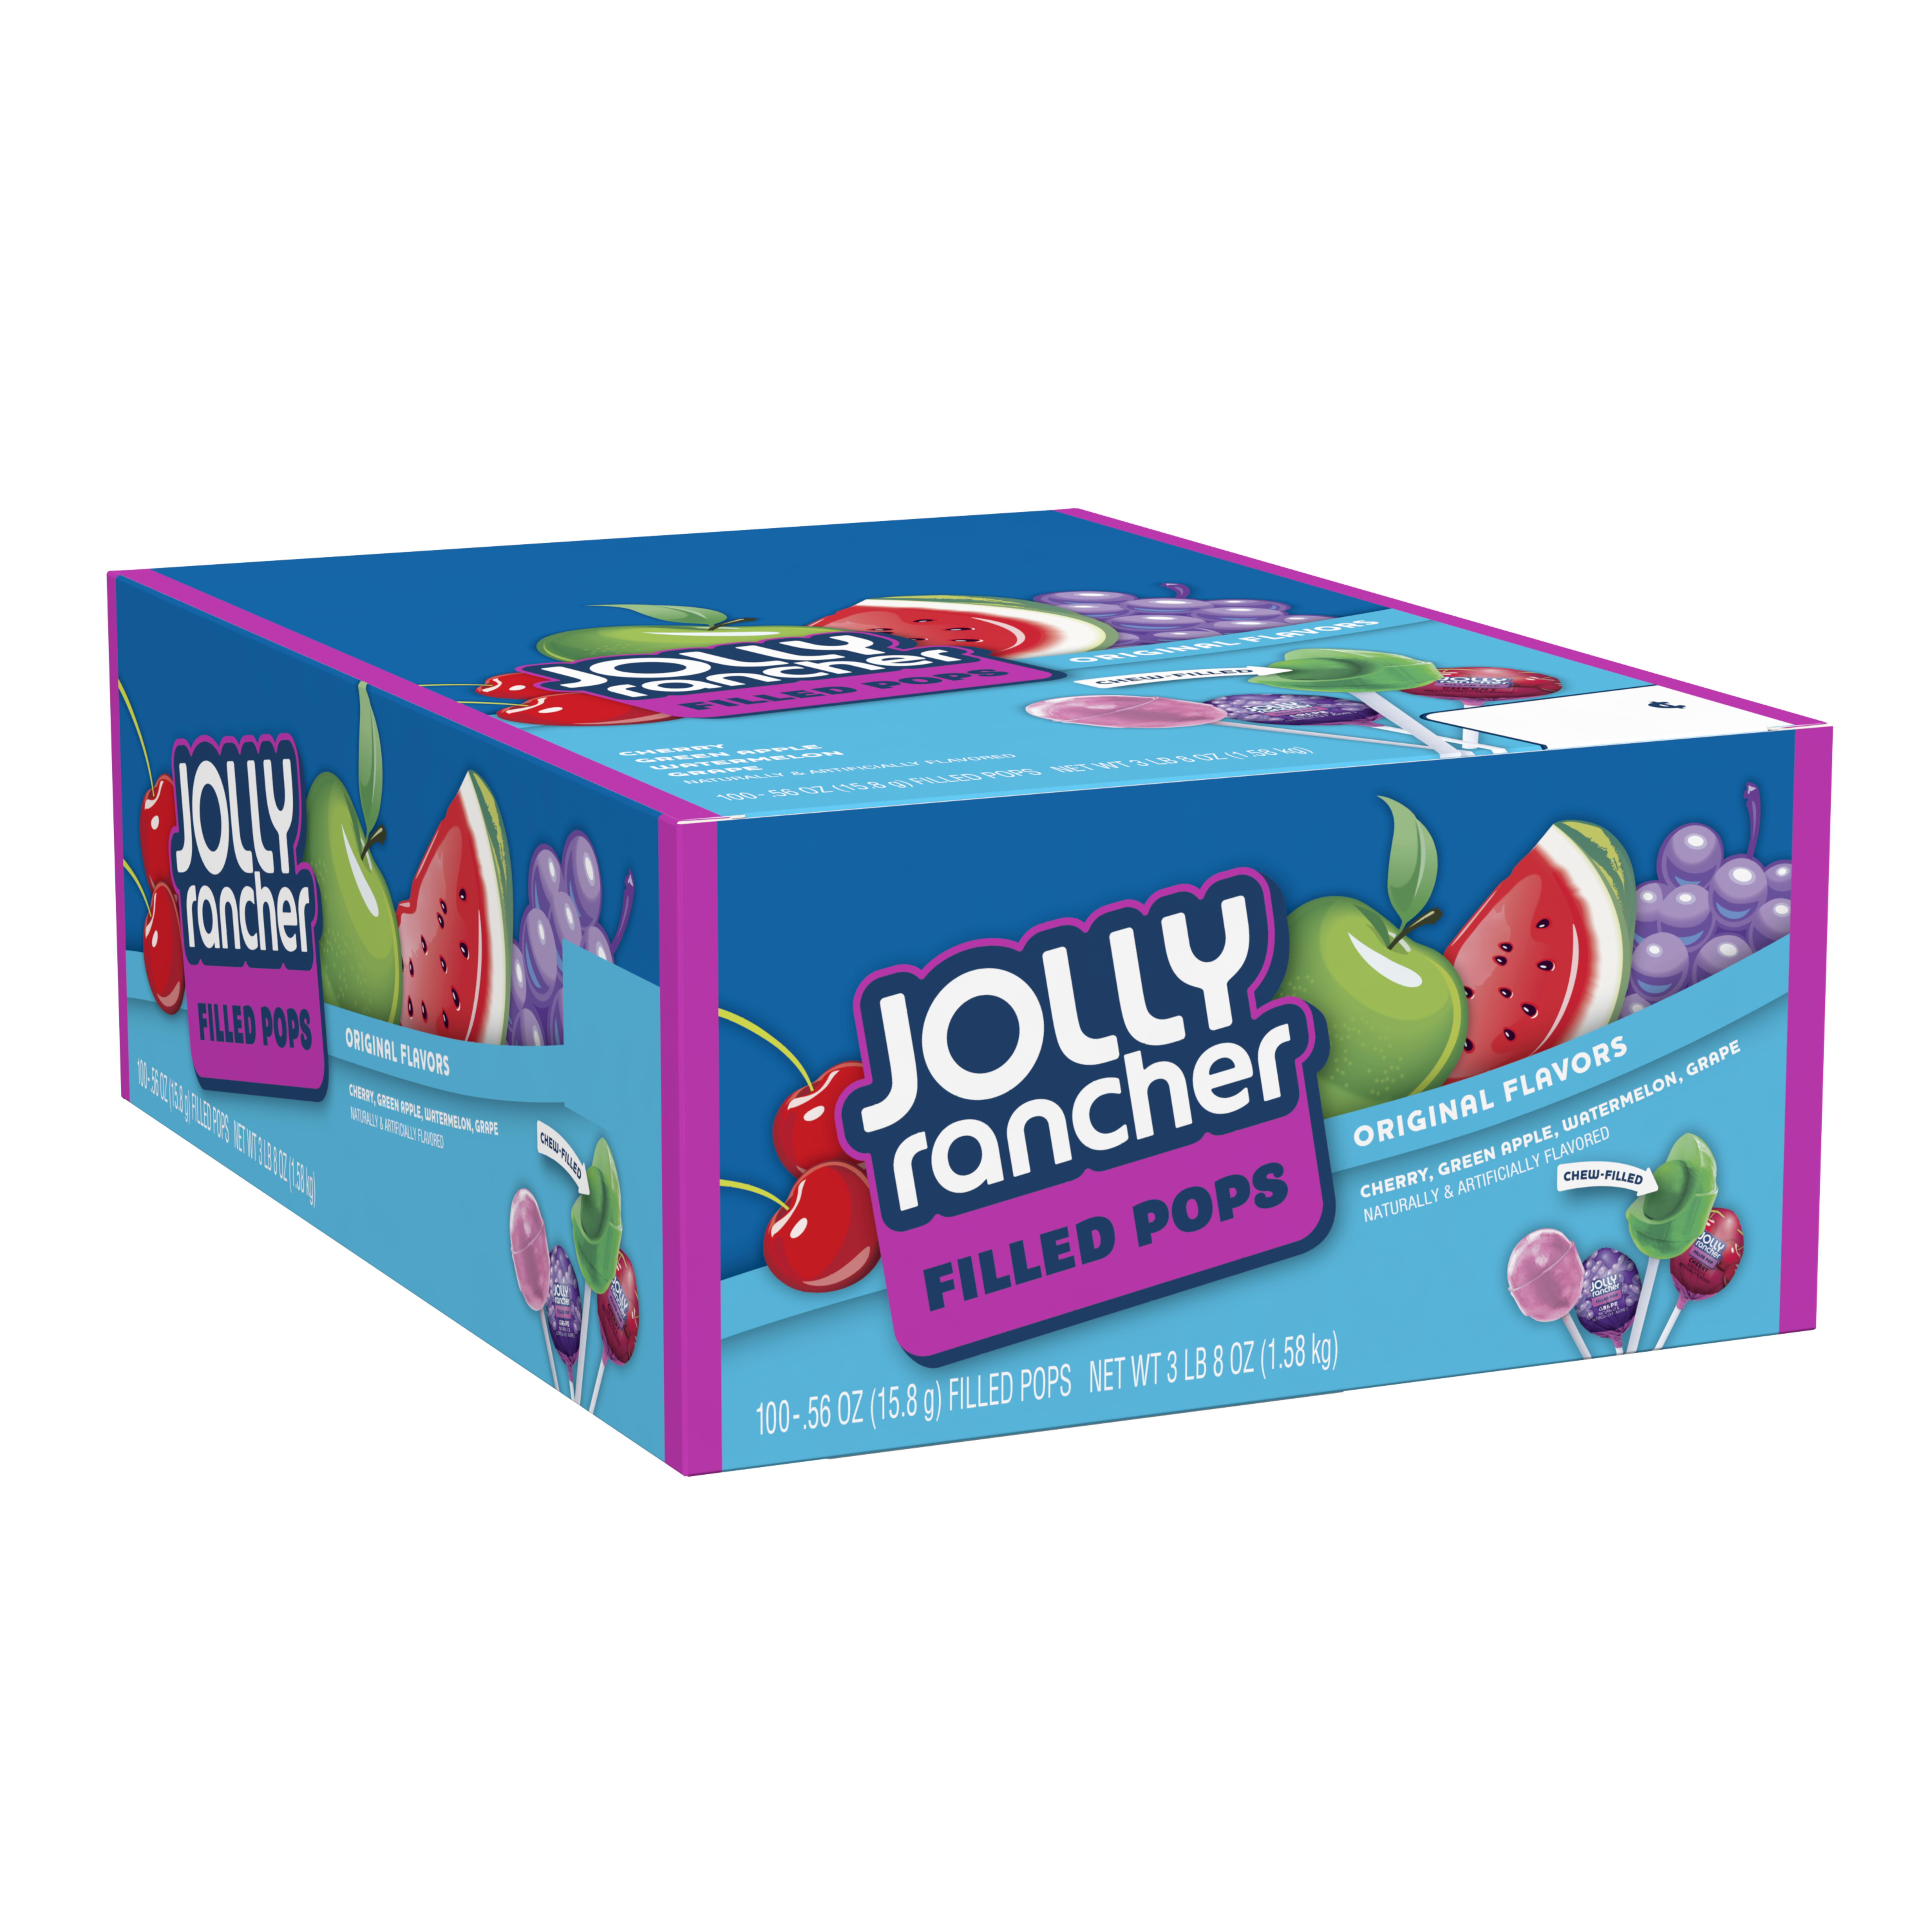 Jolly Rancher, Original Flavors Filled Pops, 0.56 Oz, 100 Ct